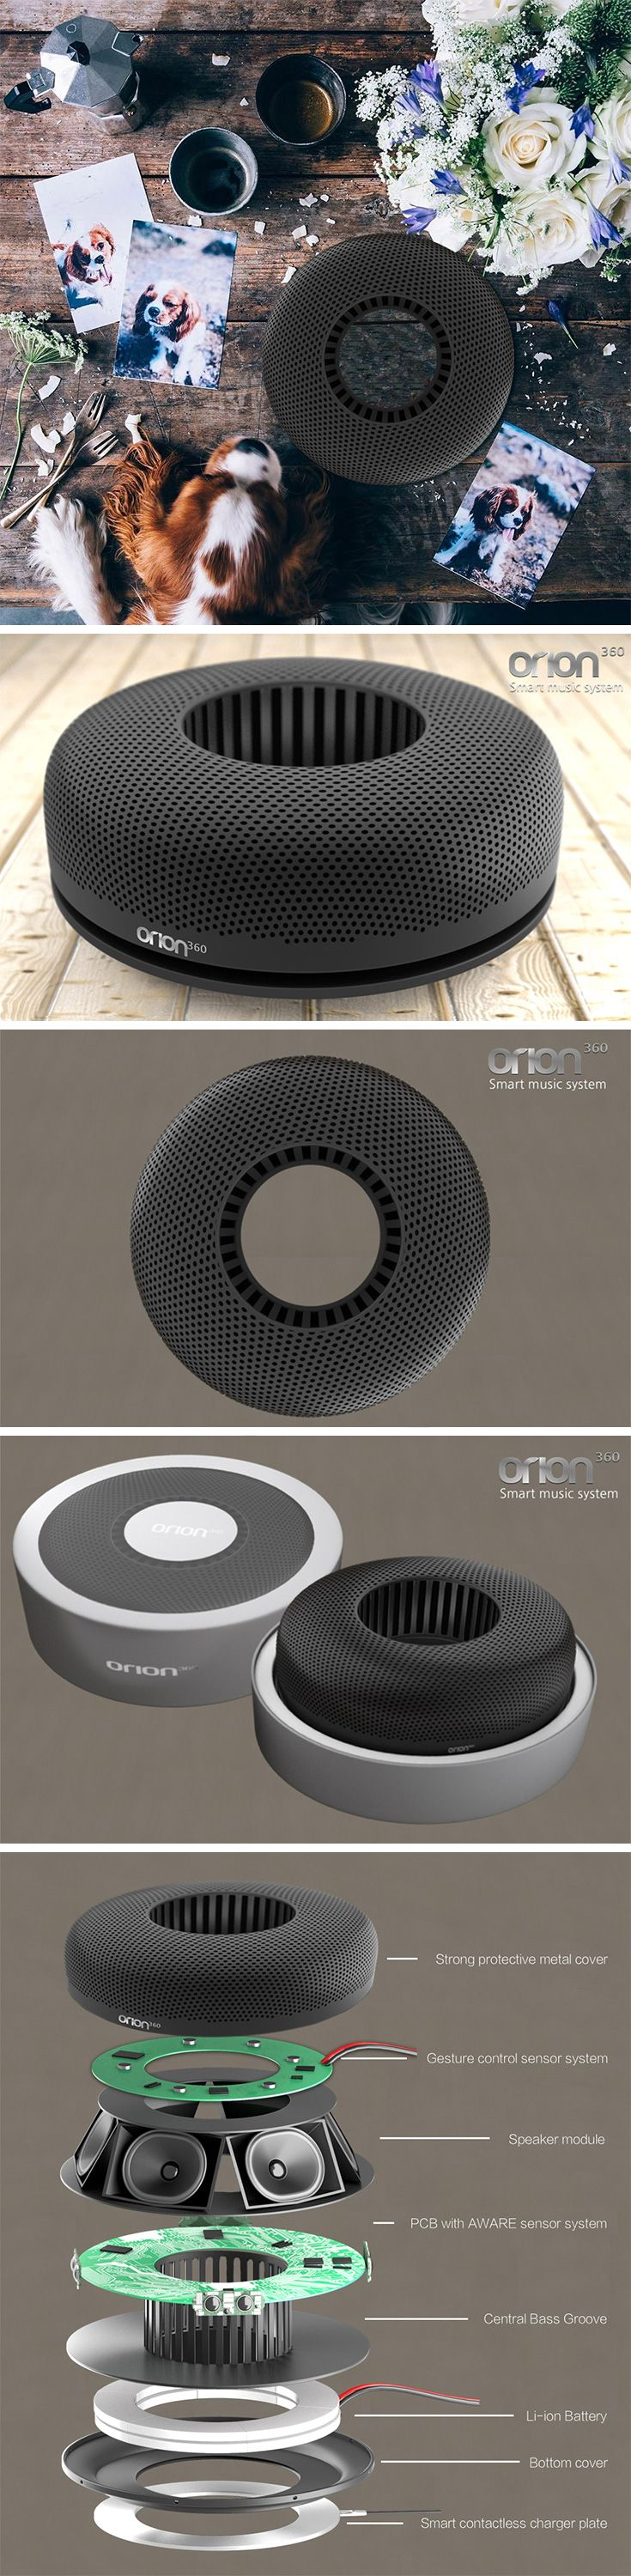 253 best speakers images on pinterest product design speakers and